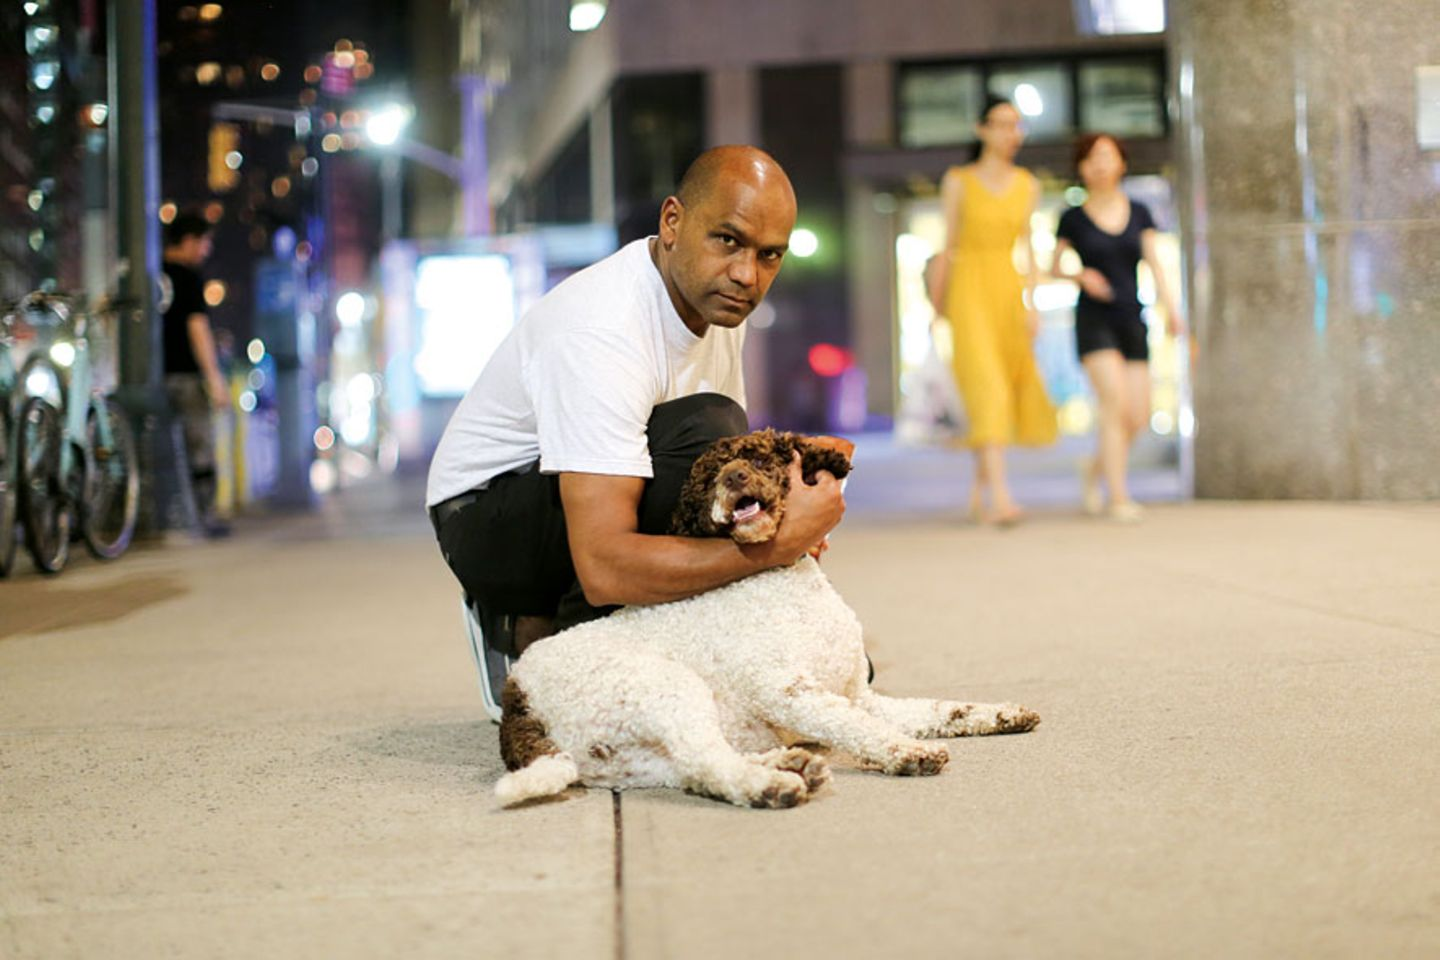 Humans of New York, 3. Story